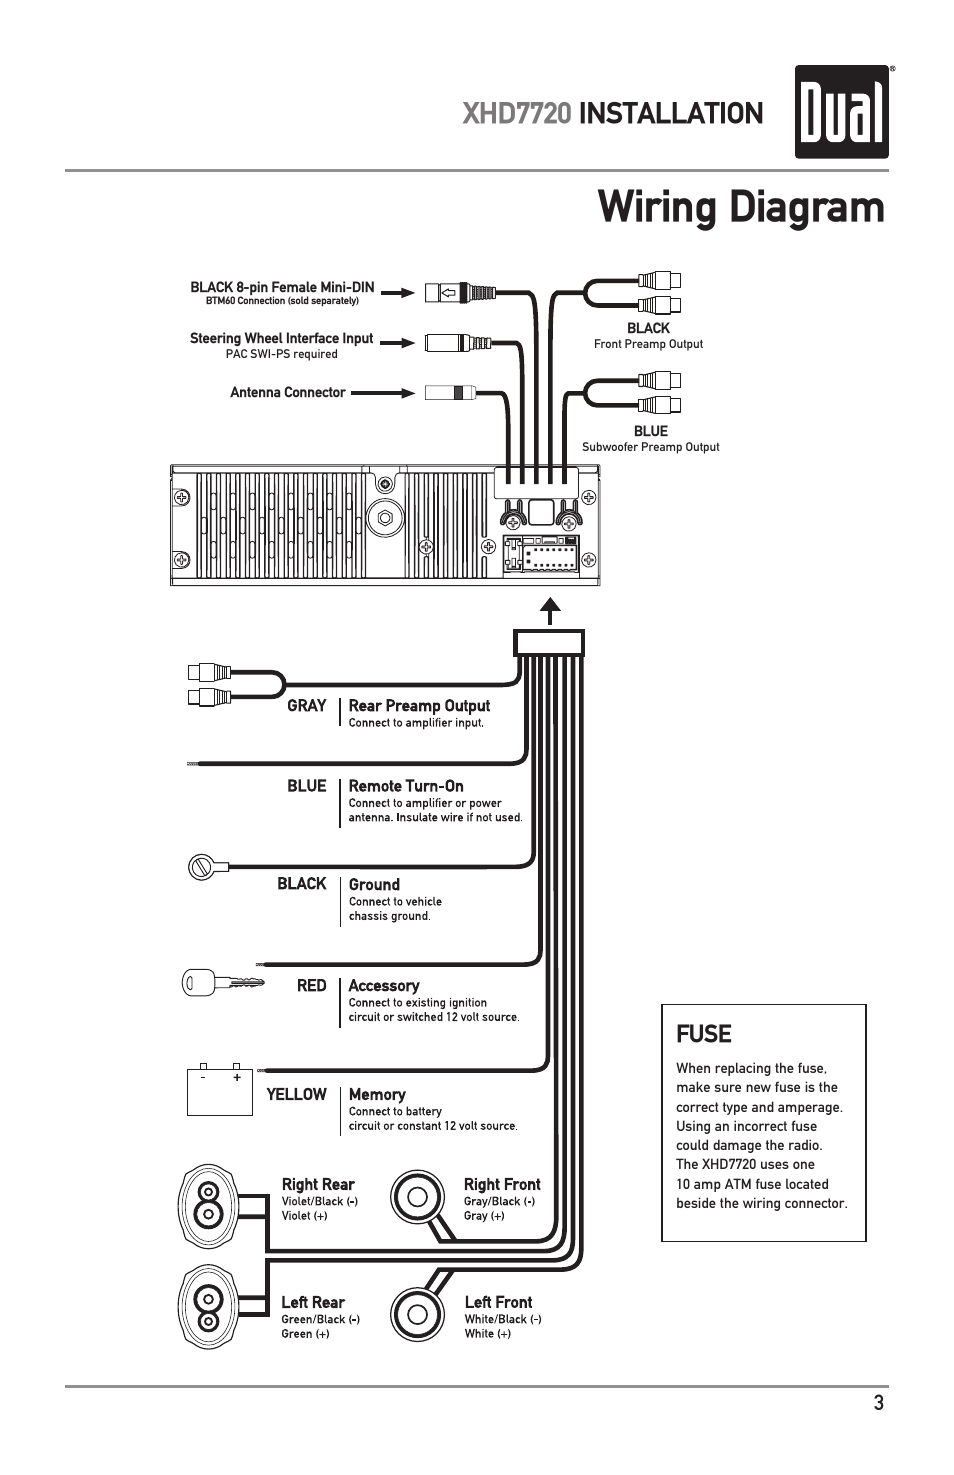 Wiring Diagram Xhd7720 Installation Fuse Dual Electronics 8 Pin Mini Din User Manual Page 3 32